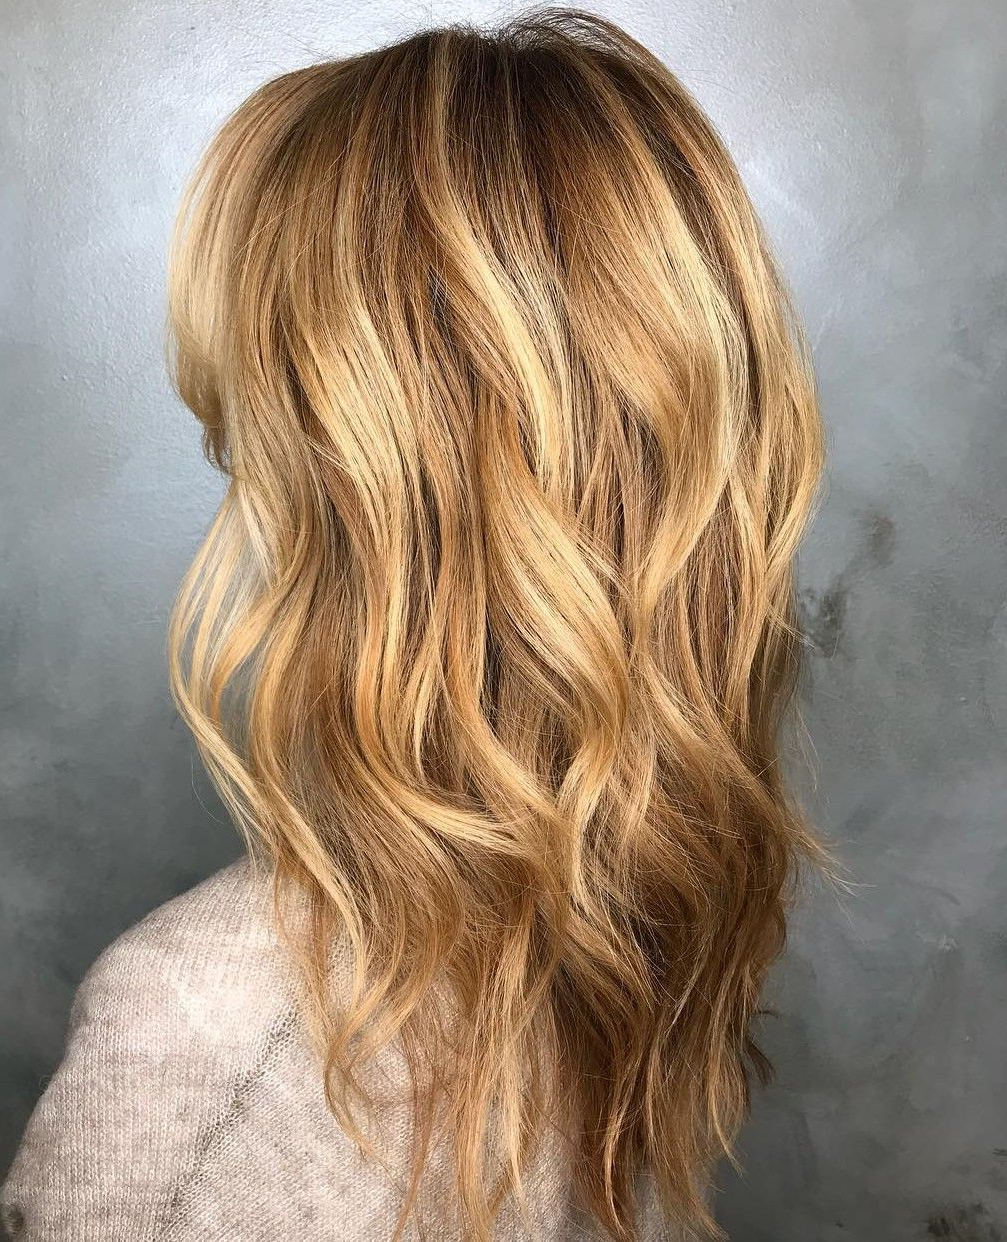 2017 Blonde Shag Haircuts With Emphasized Layers Inside Pin On Hair Ideas (View 15 of 20)